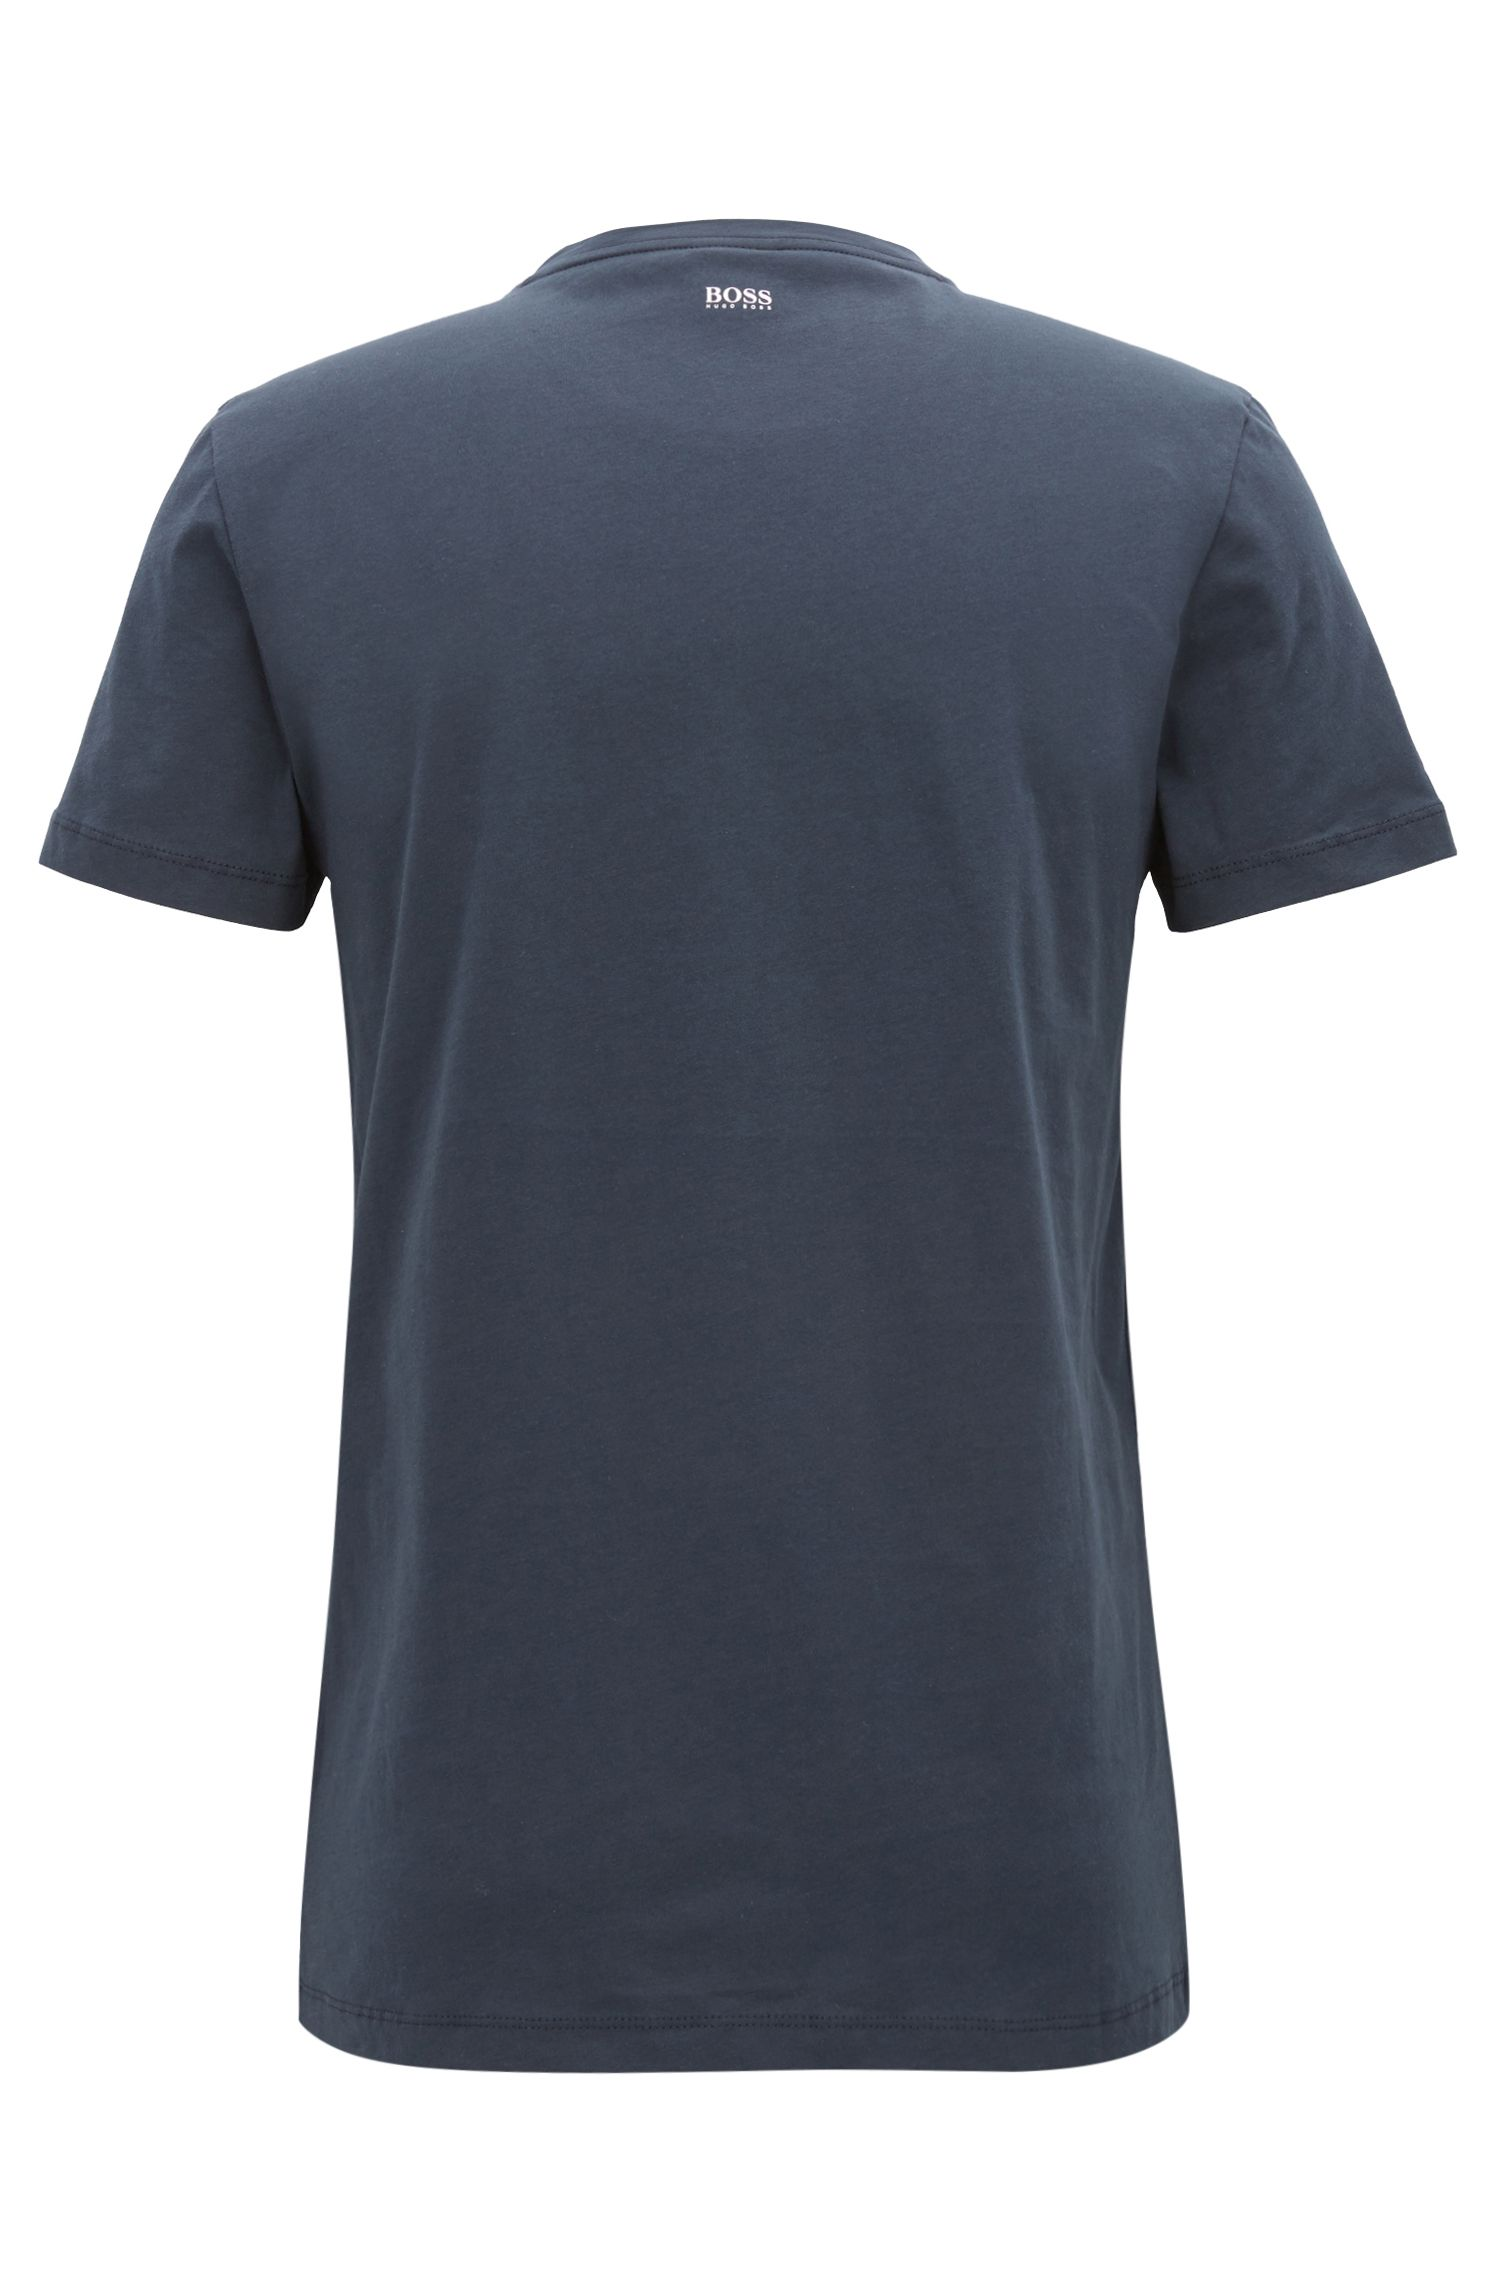 Jersey T-shirt with dégradé flocked logo, Dark Blue